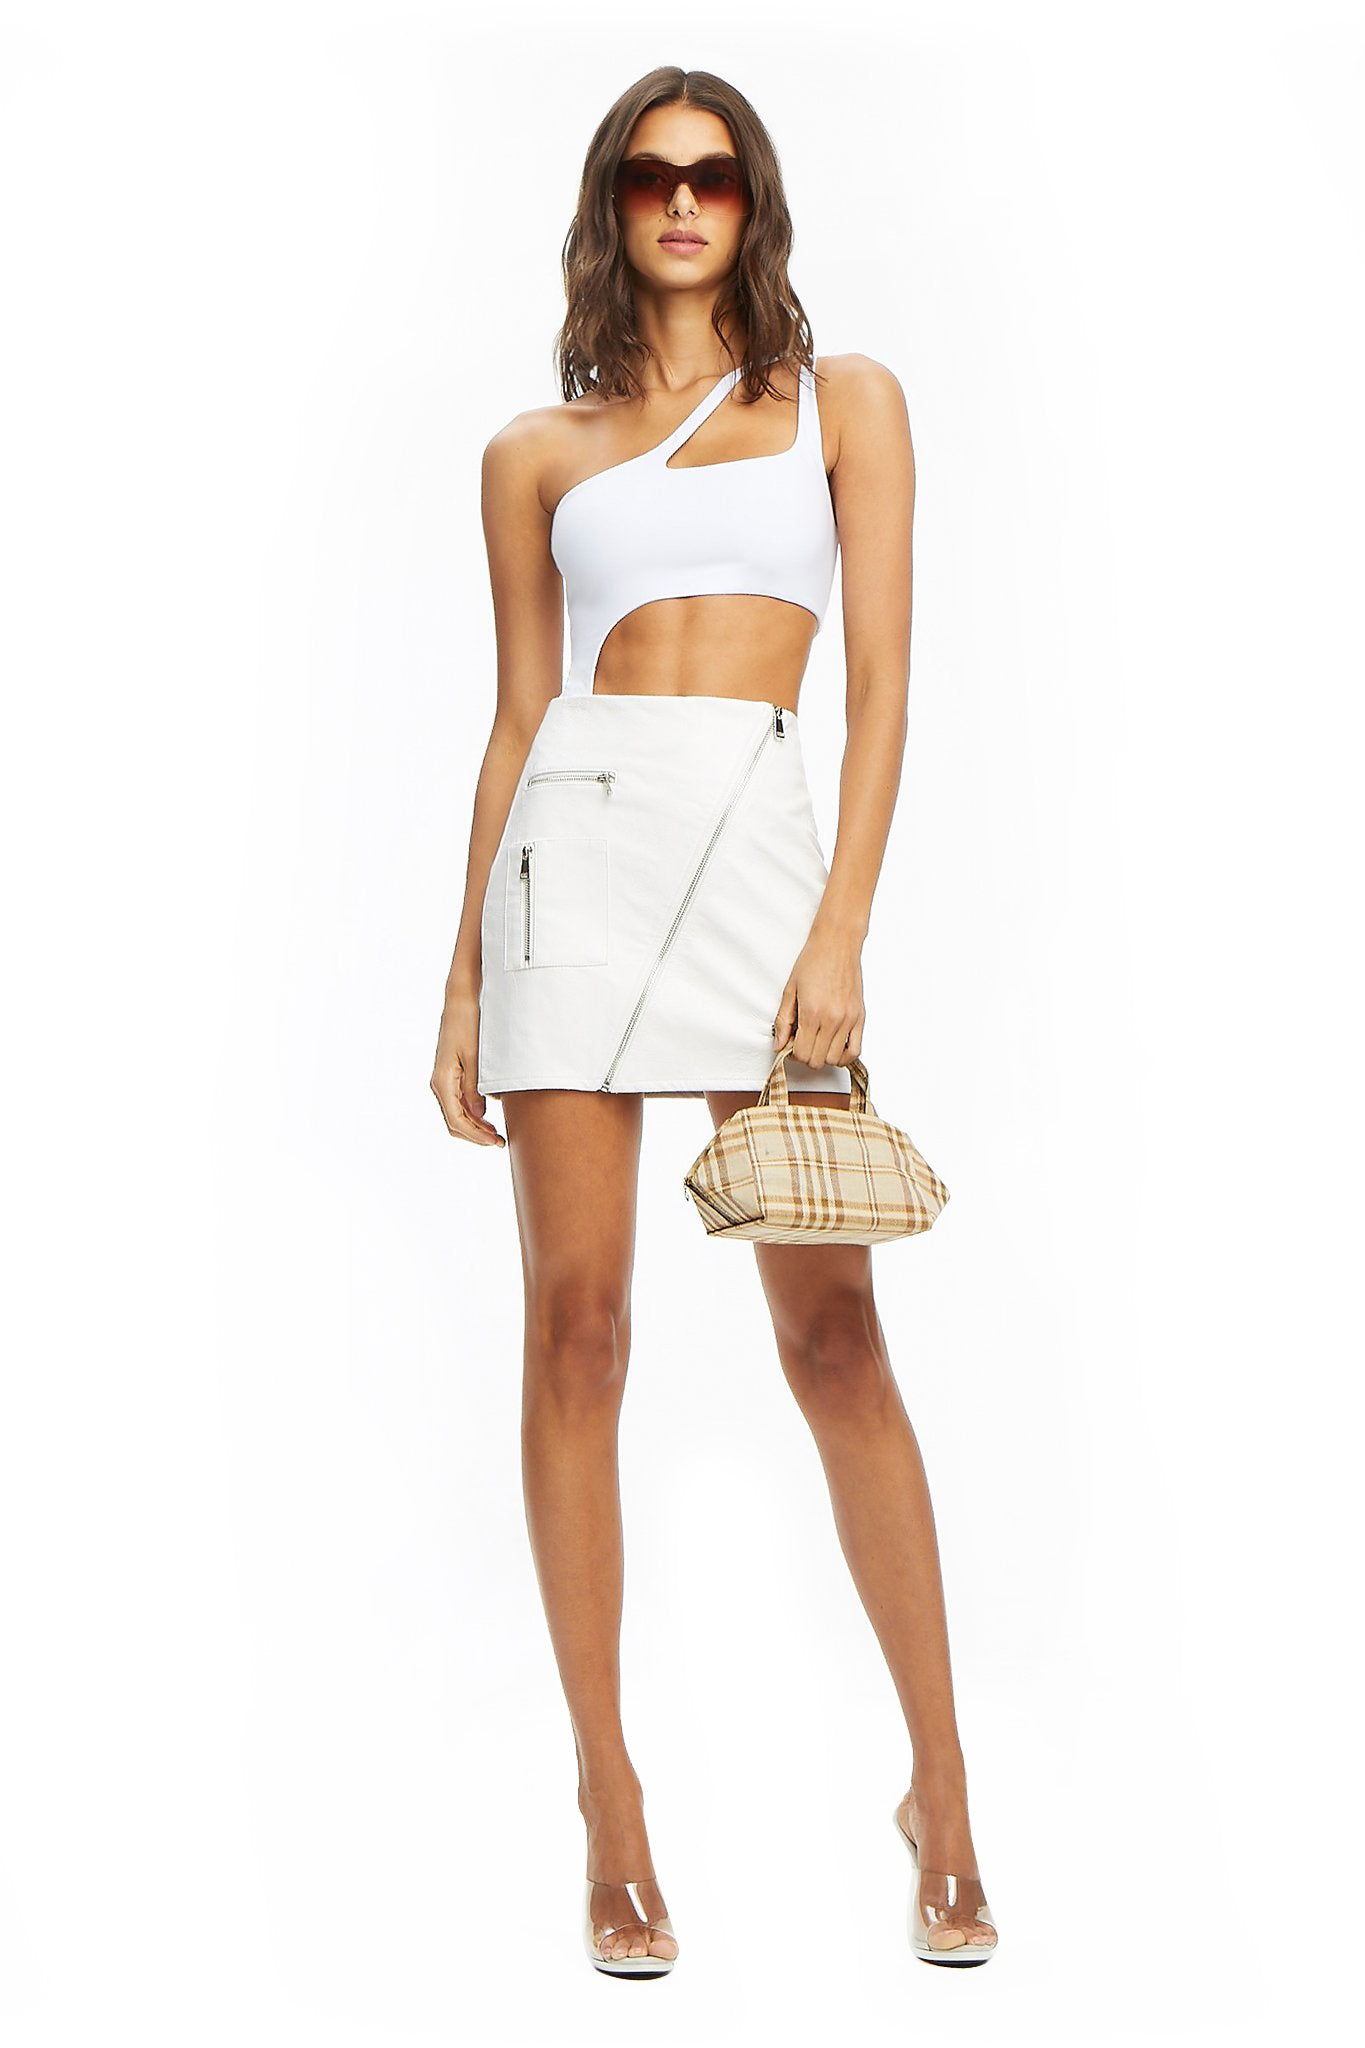 COURTNEY SKIRT 2.0 - WHITE